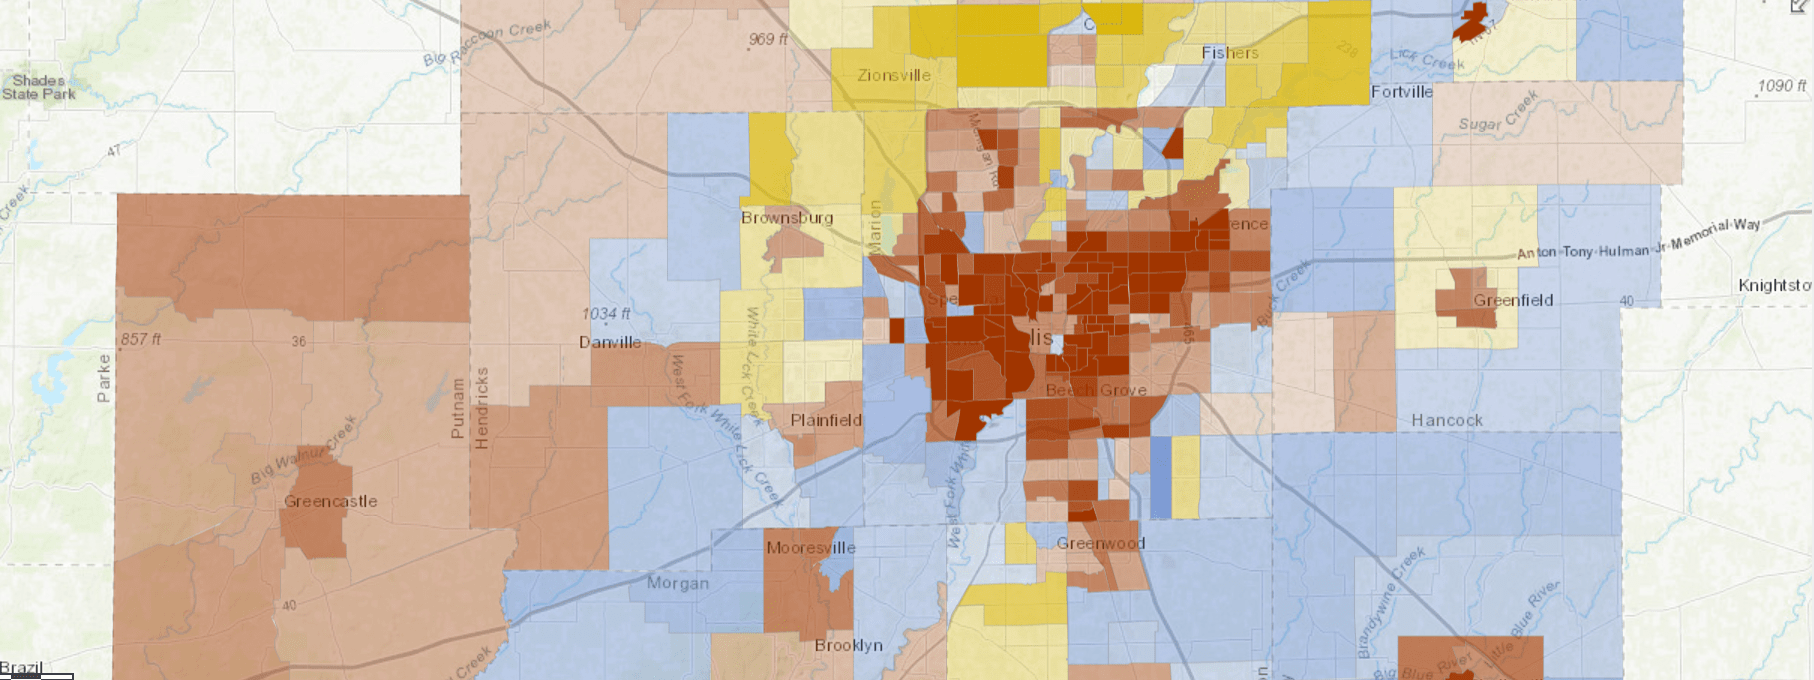 Indy's Least Mixed-Income Neighborhoods